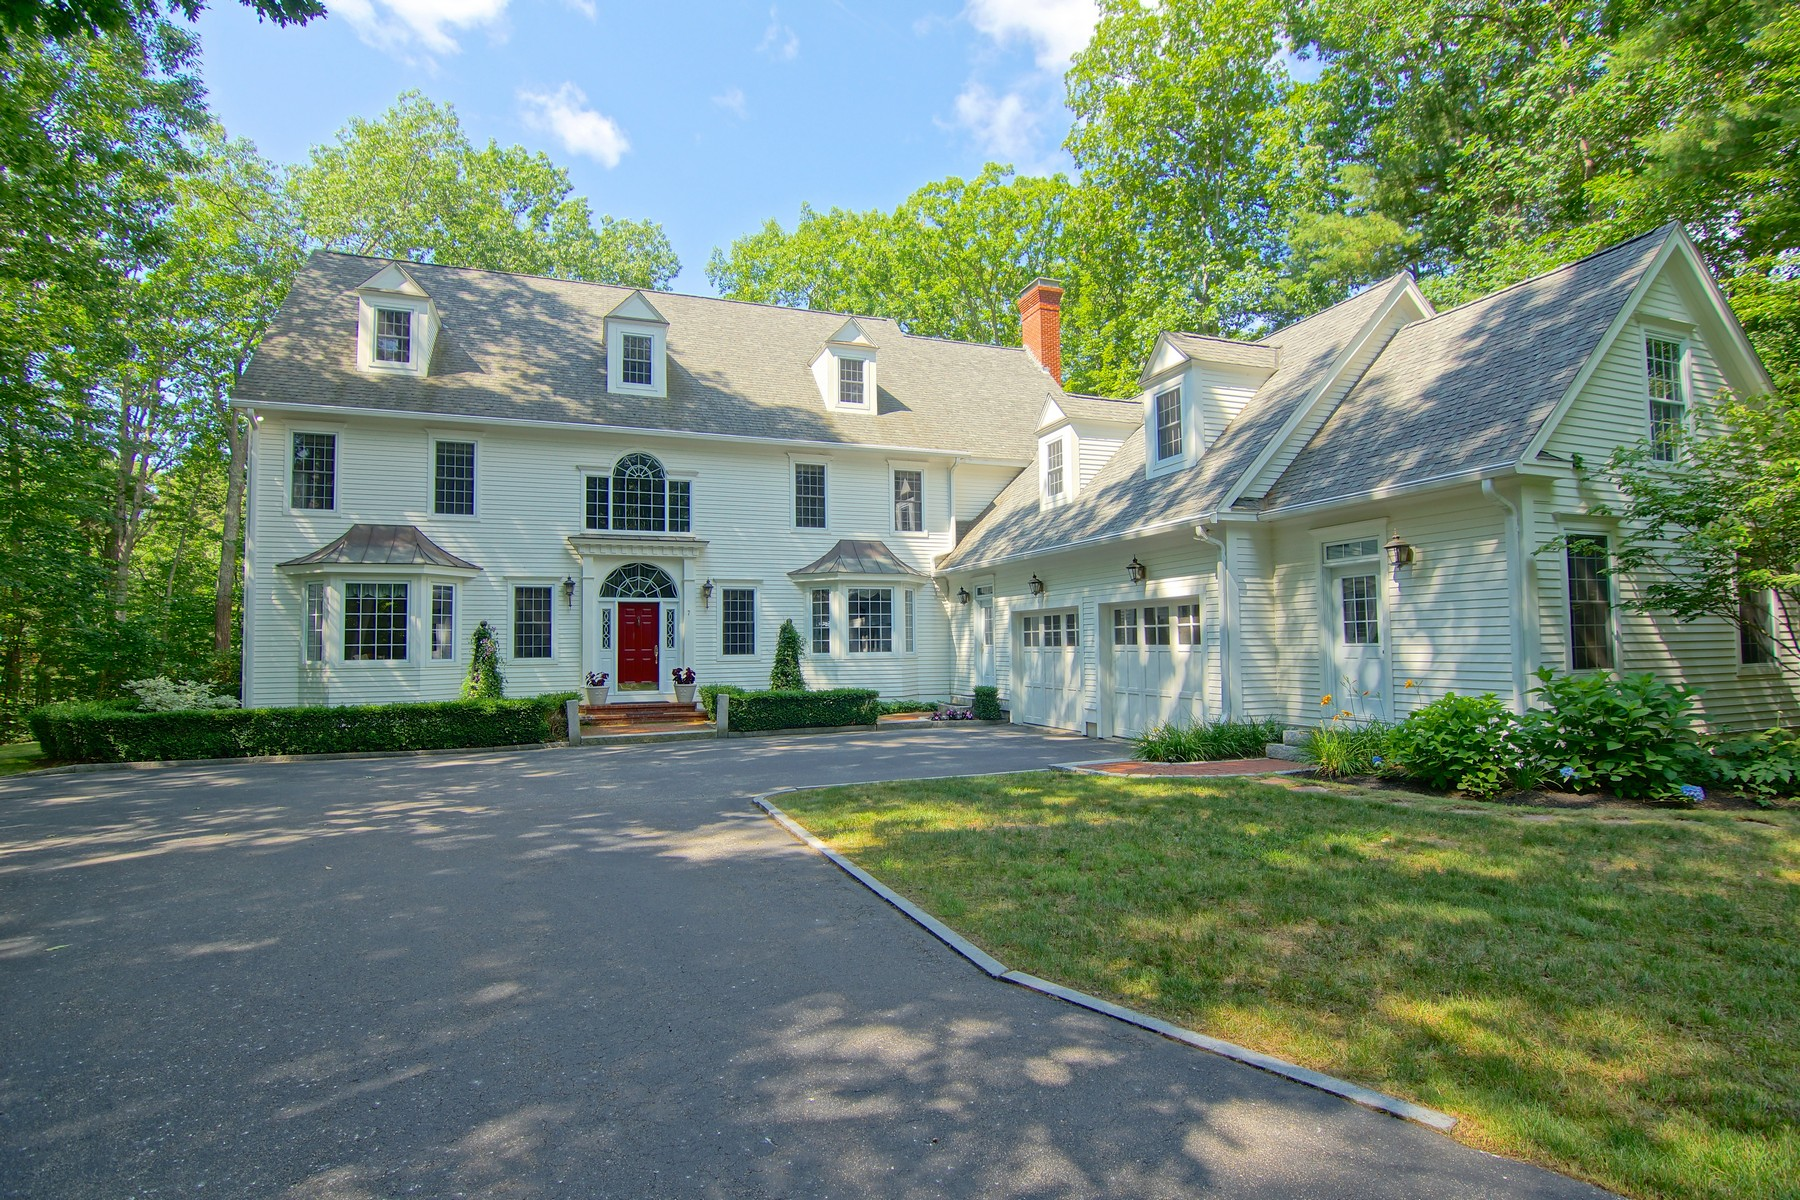 Single Family Home for Sale at Custom Colonial with Dramatic Flair 7 Wingate Court Stratham, New Hampshire, 03885 United States